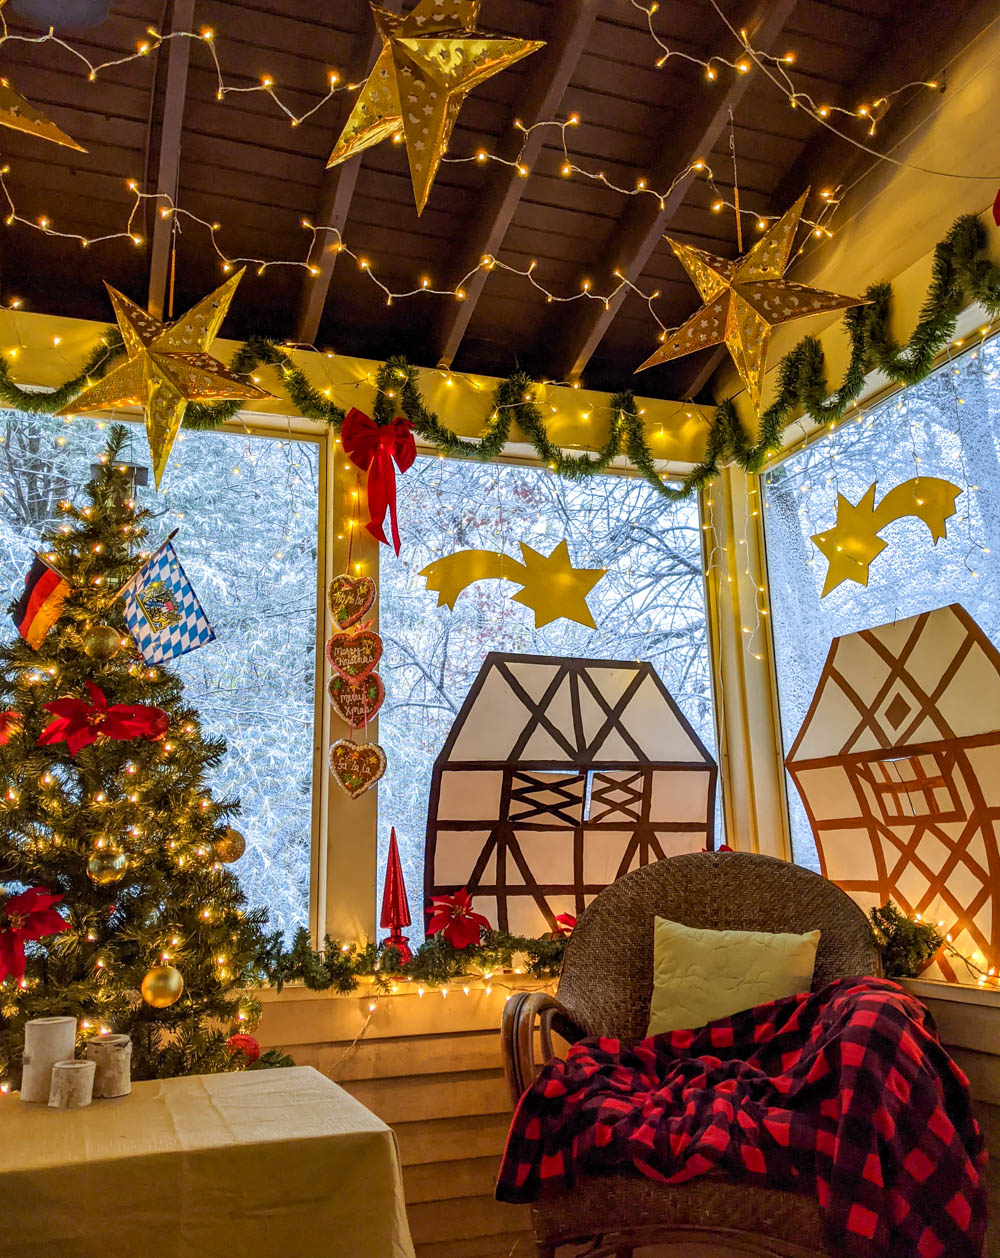 German Christmas market foods and drinks you can enjoy at home (with recipes) | setting up the party on my screened-in back porch with snow